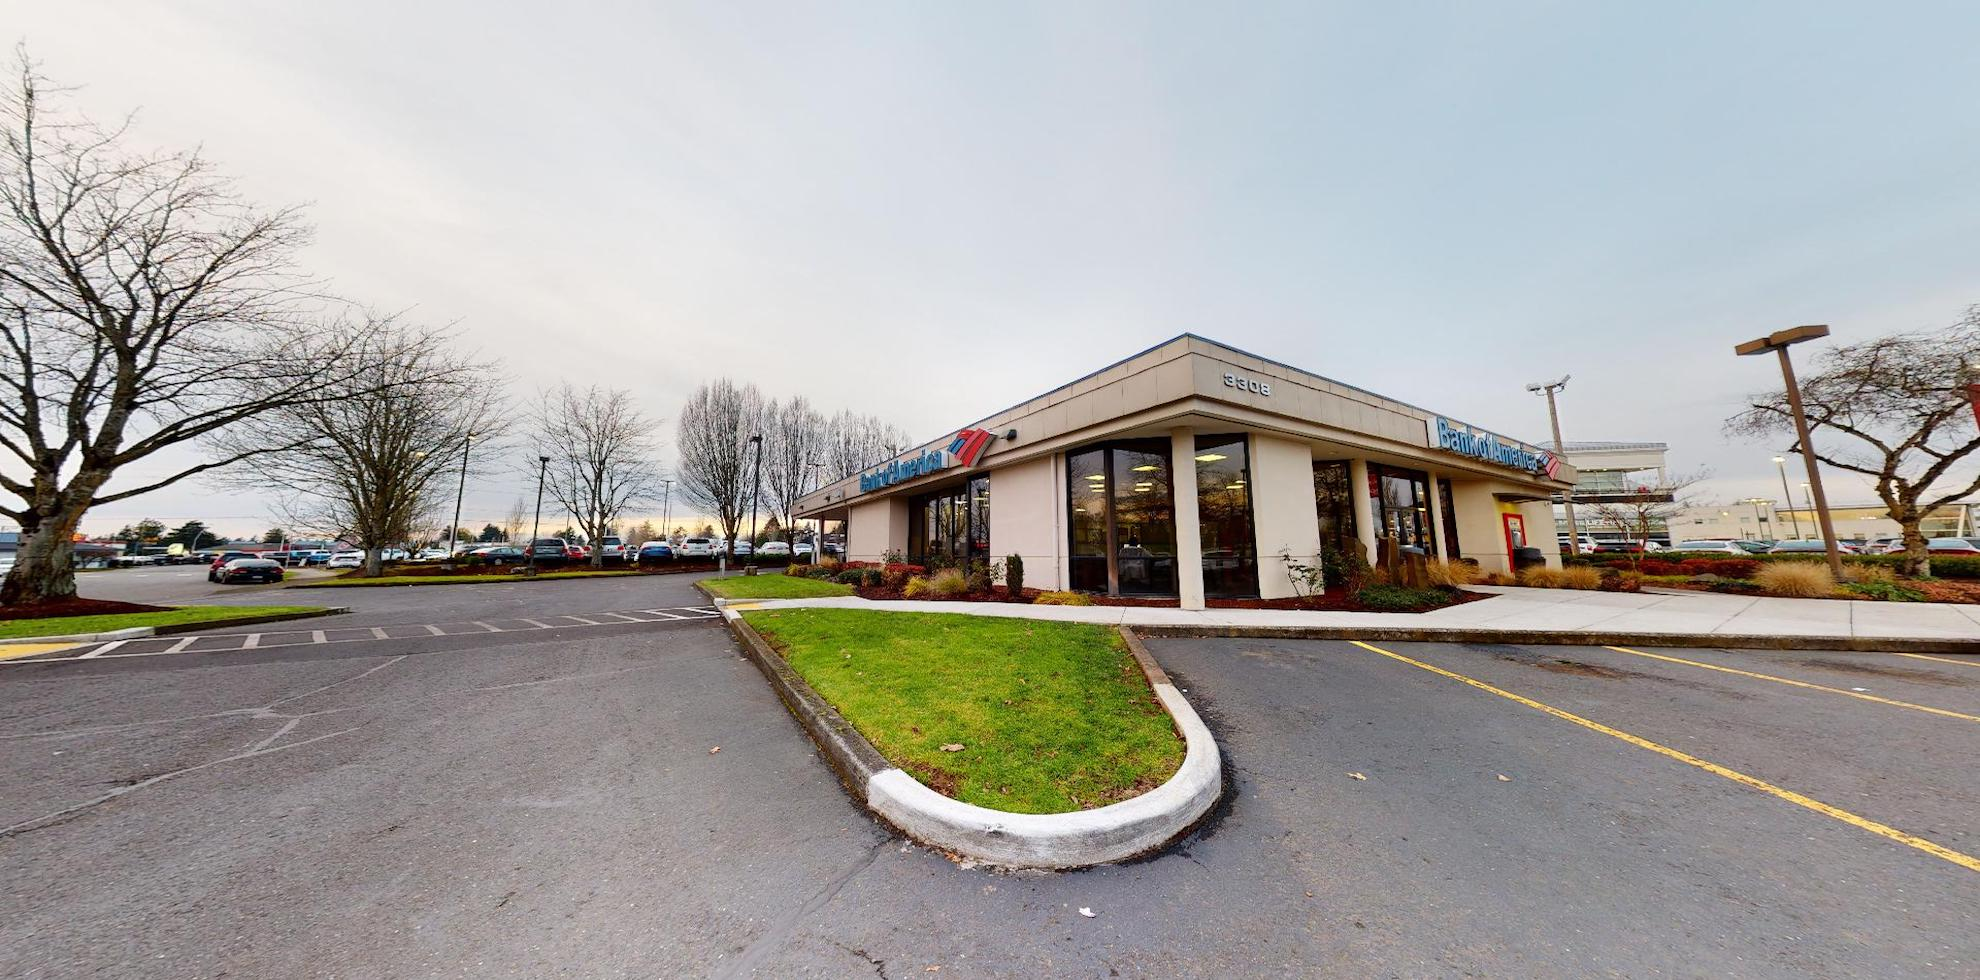 Bank of America financial center with drive-thru ATM | 3308 NE Auto Mall Dr, Vancouver, WA 98662